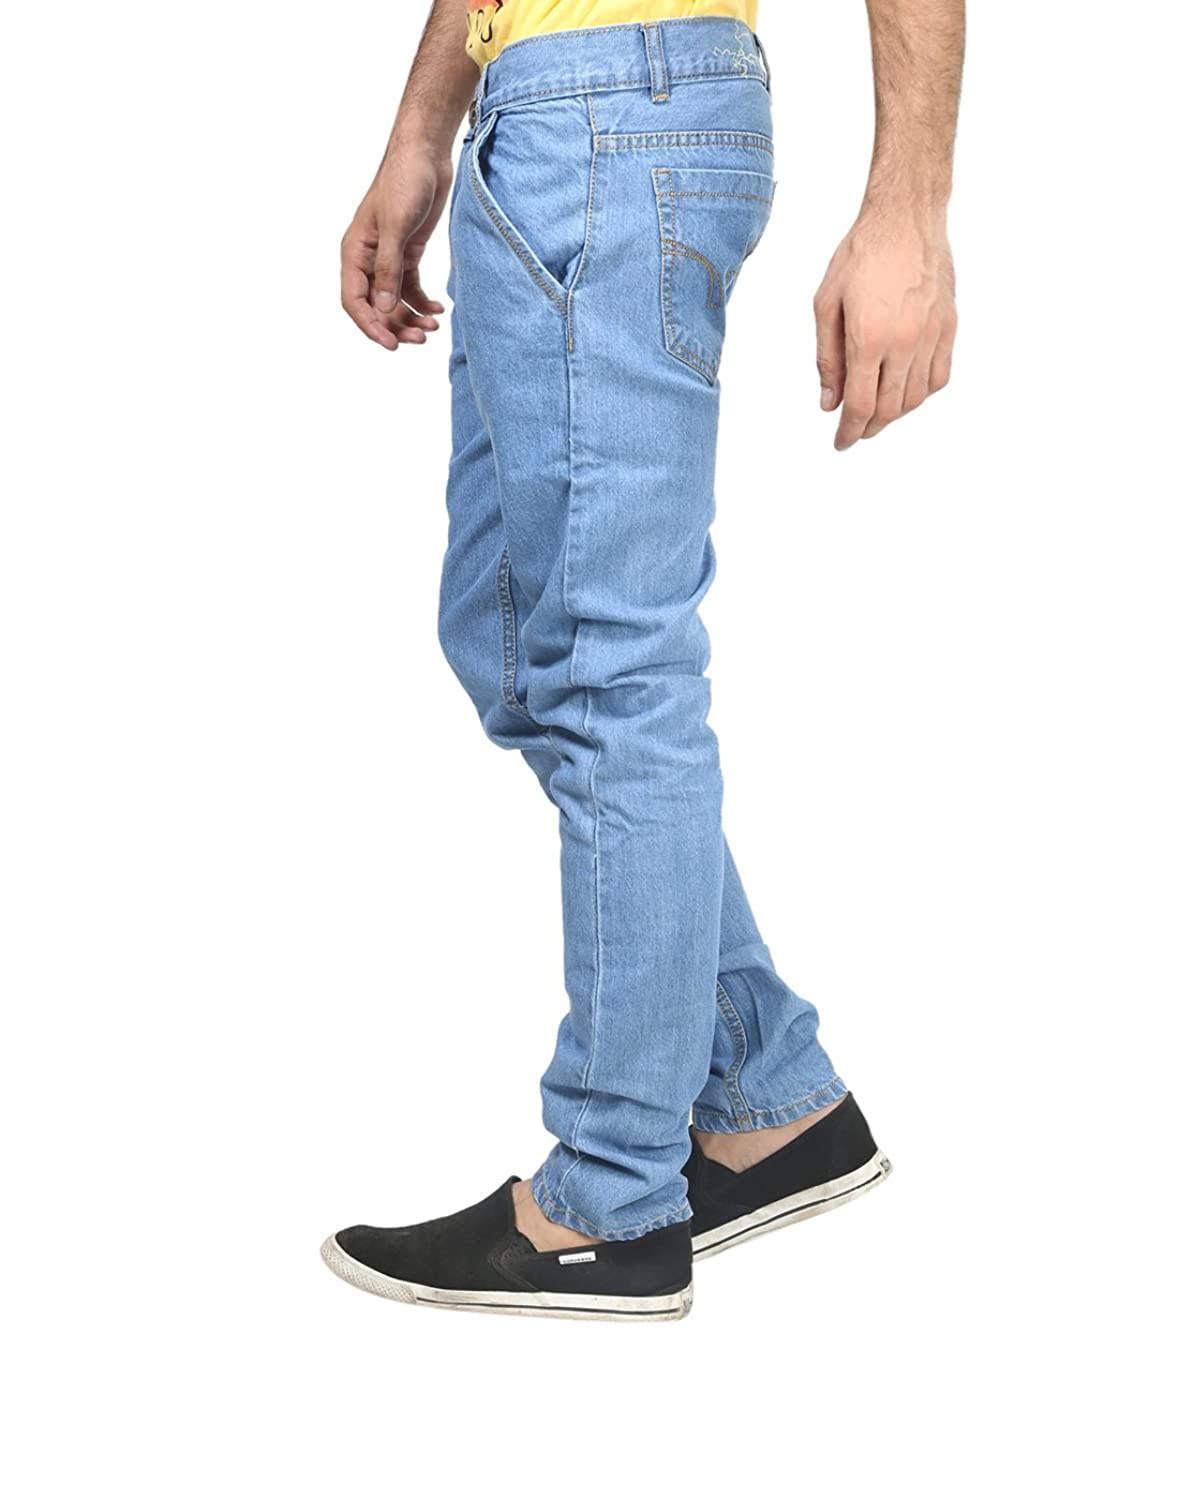 Deals on Trendy Trotters Men's Regular Fit Jeans